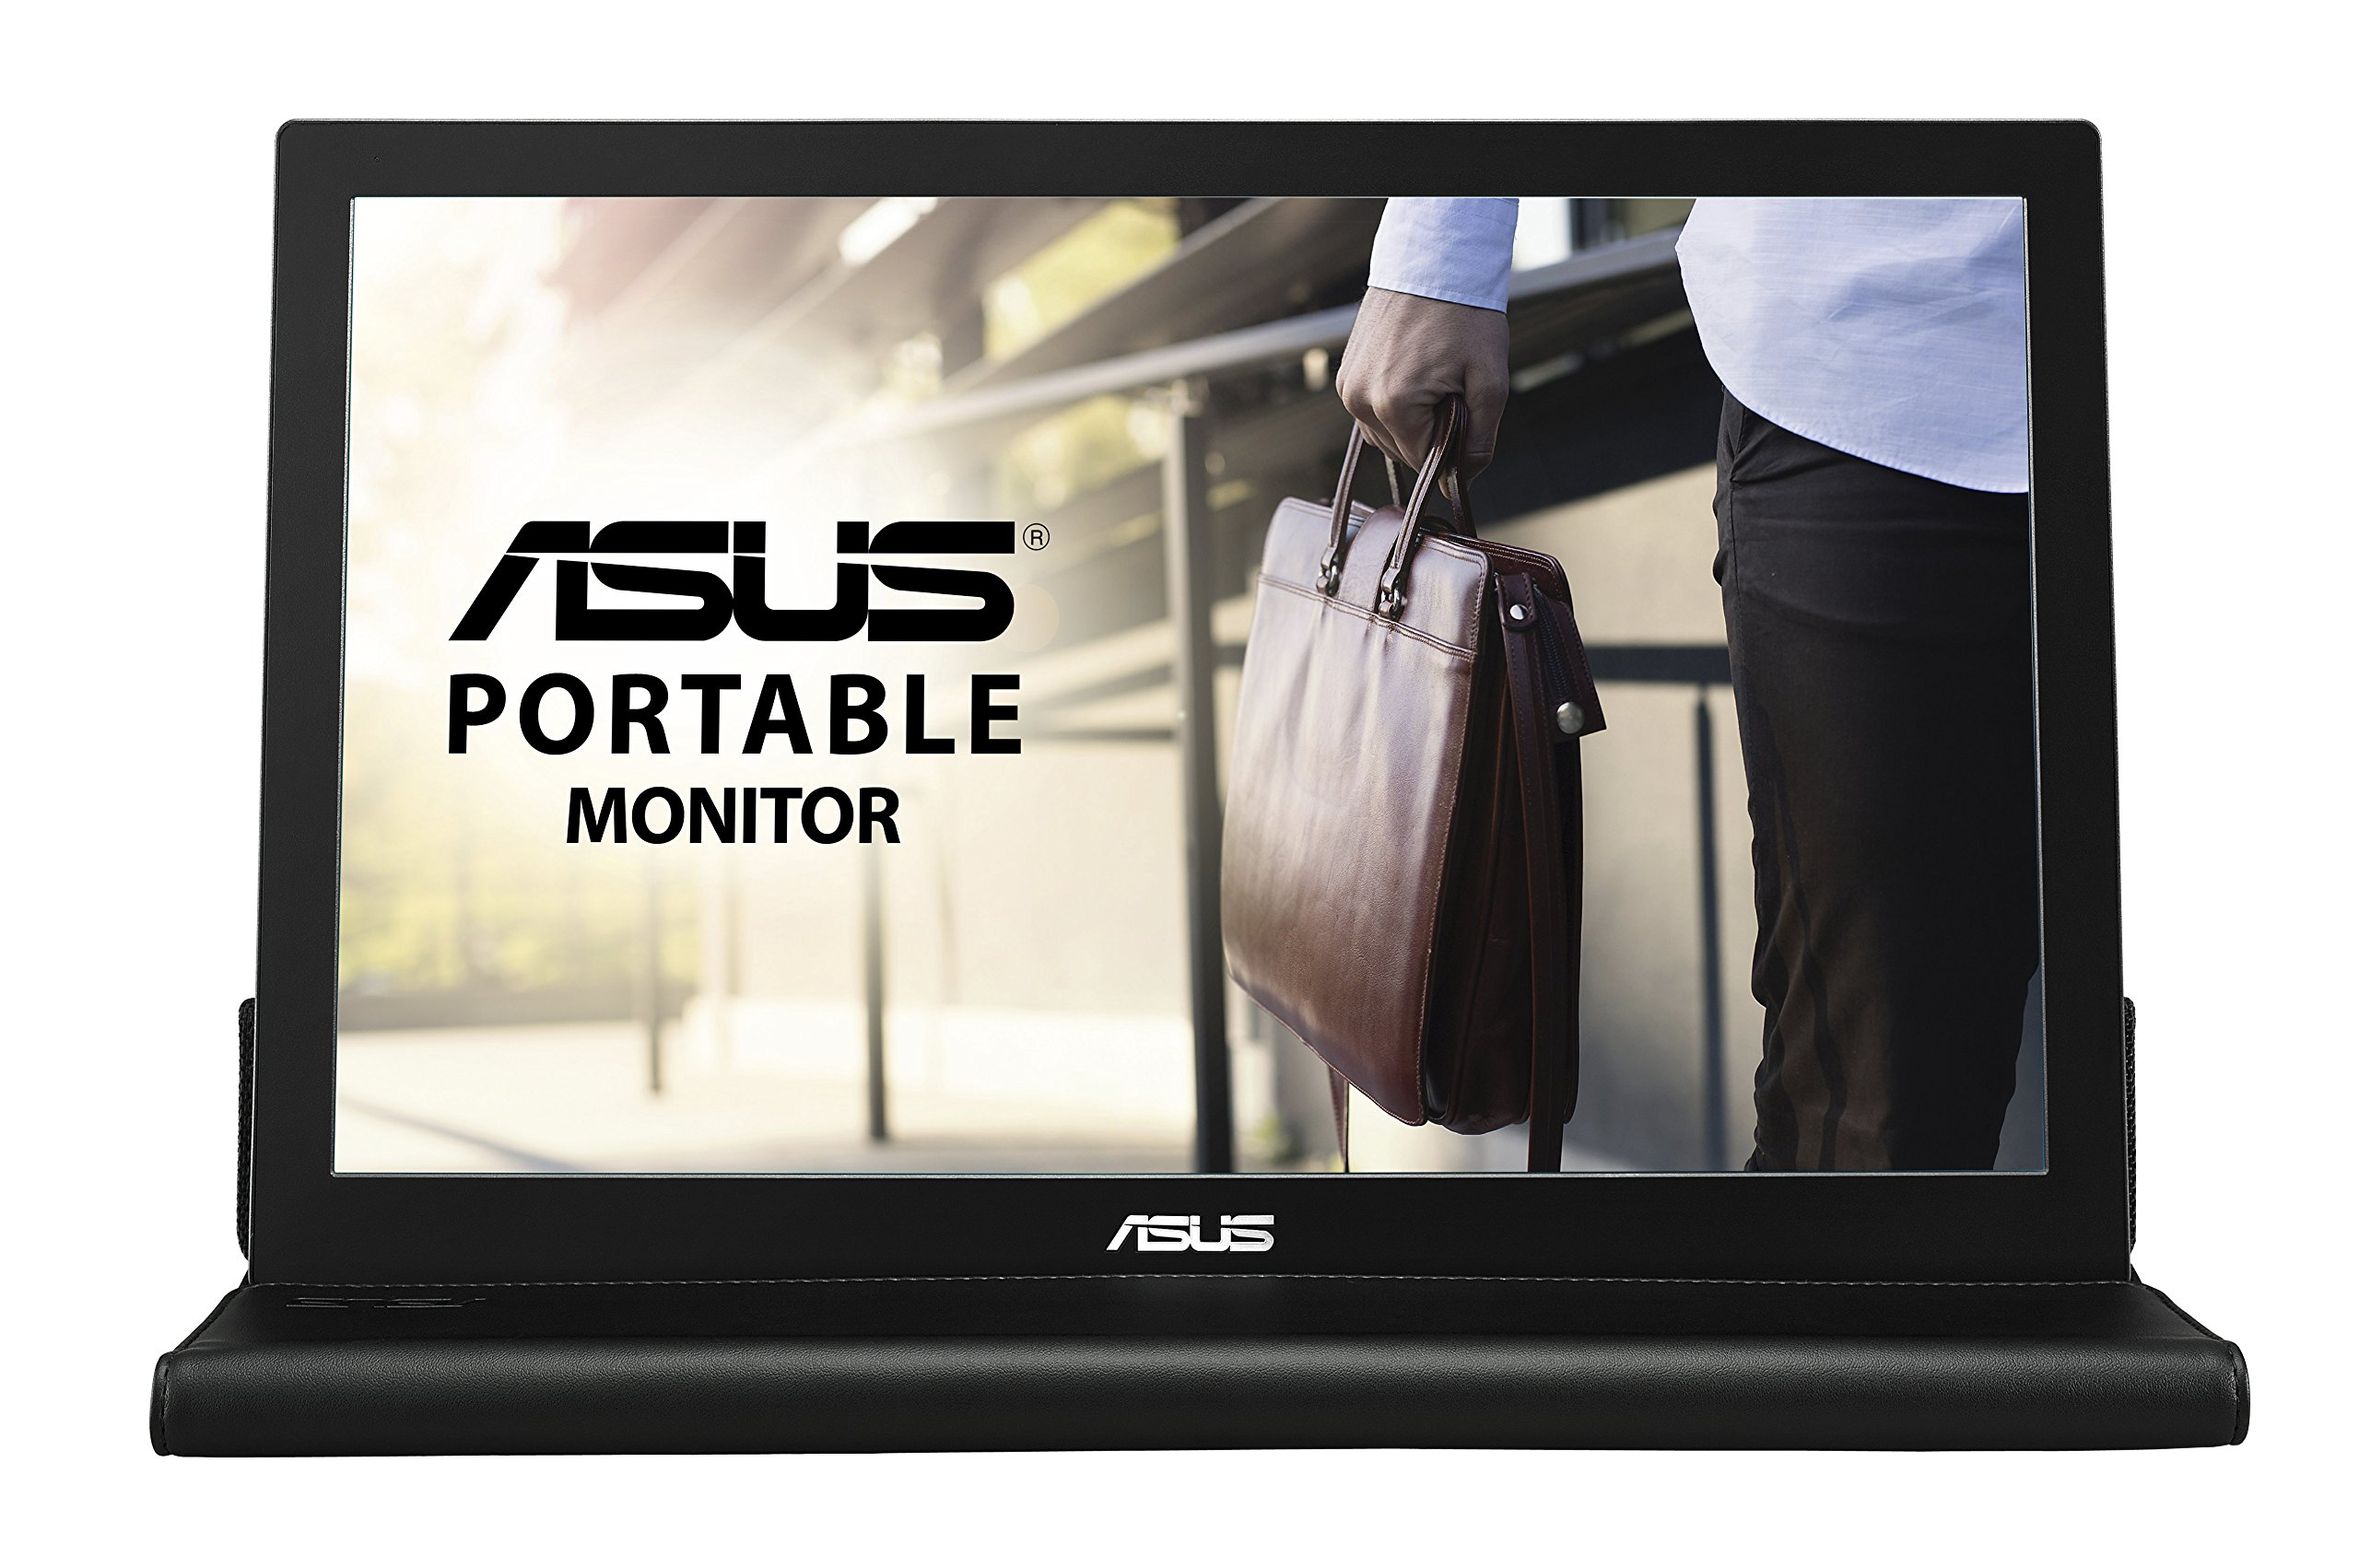 ASUS MB169B+ 15.6'' Full HD 1920x1080 IPS USB Portable Monitor by Asus